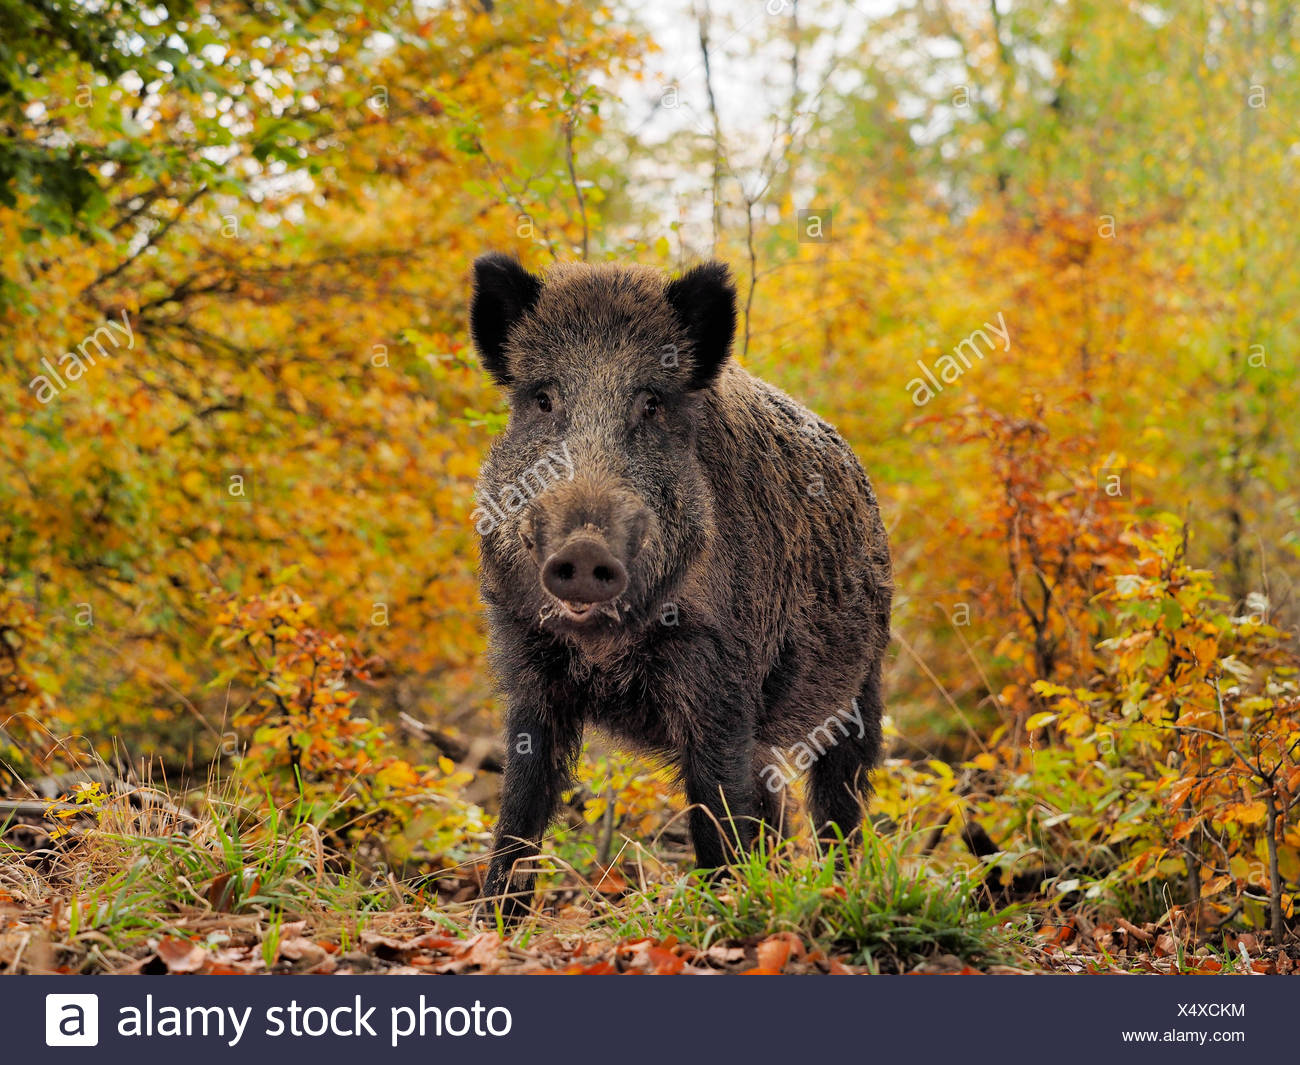 wild boar, pig, wild boar (Sus scrofa), young tusker in autumn woods, Germany, Baden-Wuerttemberg - Stock Image